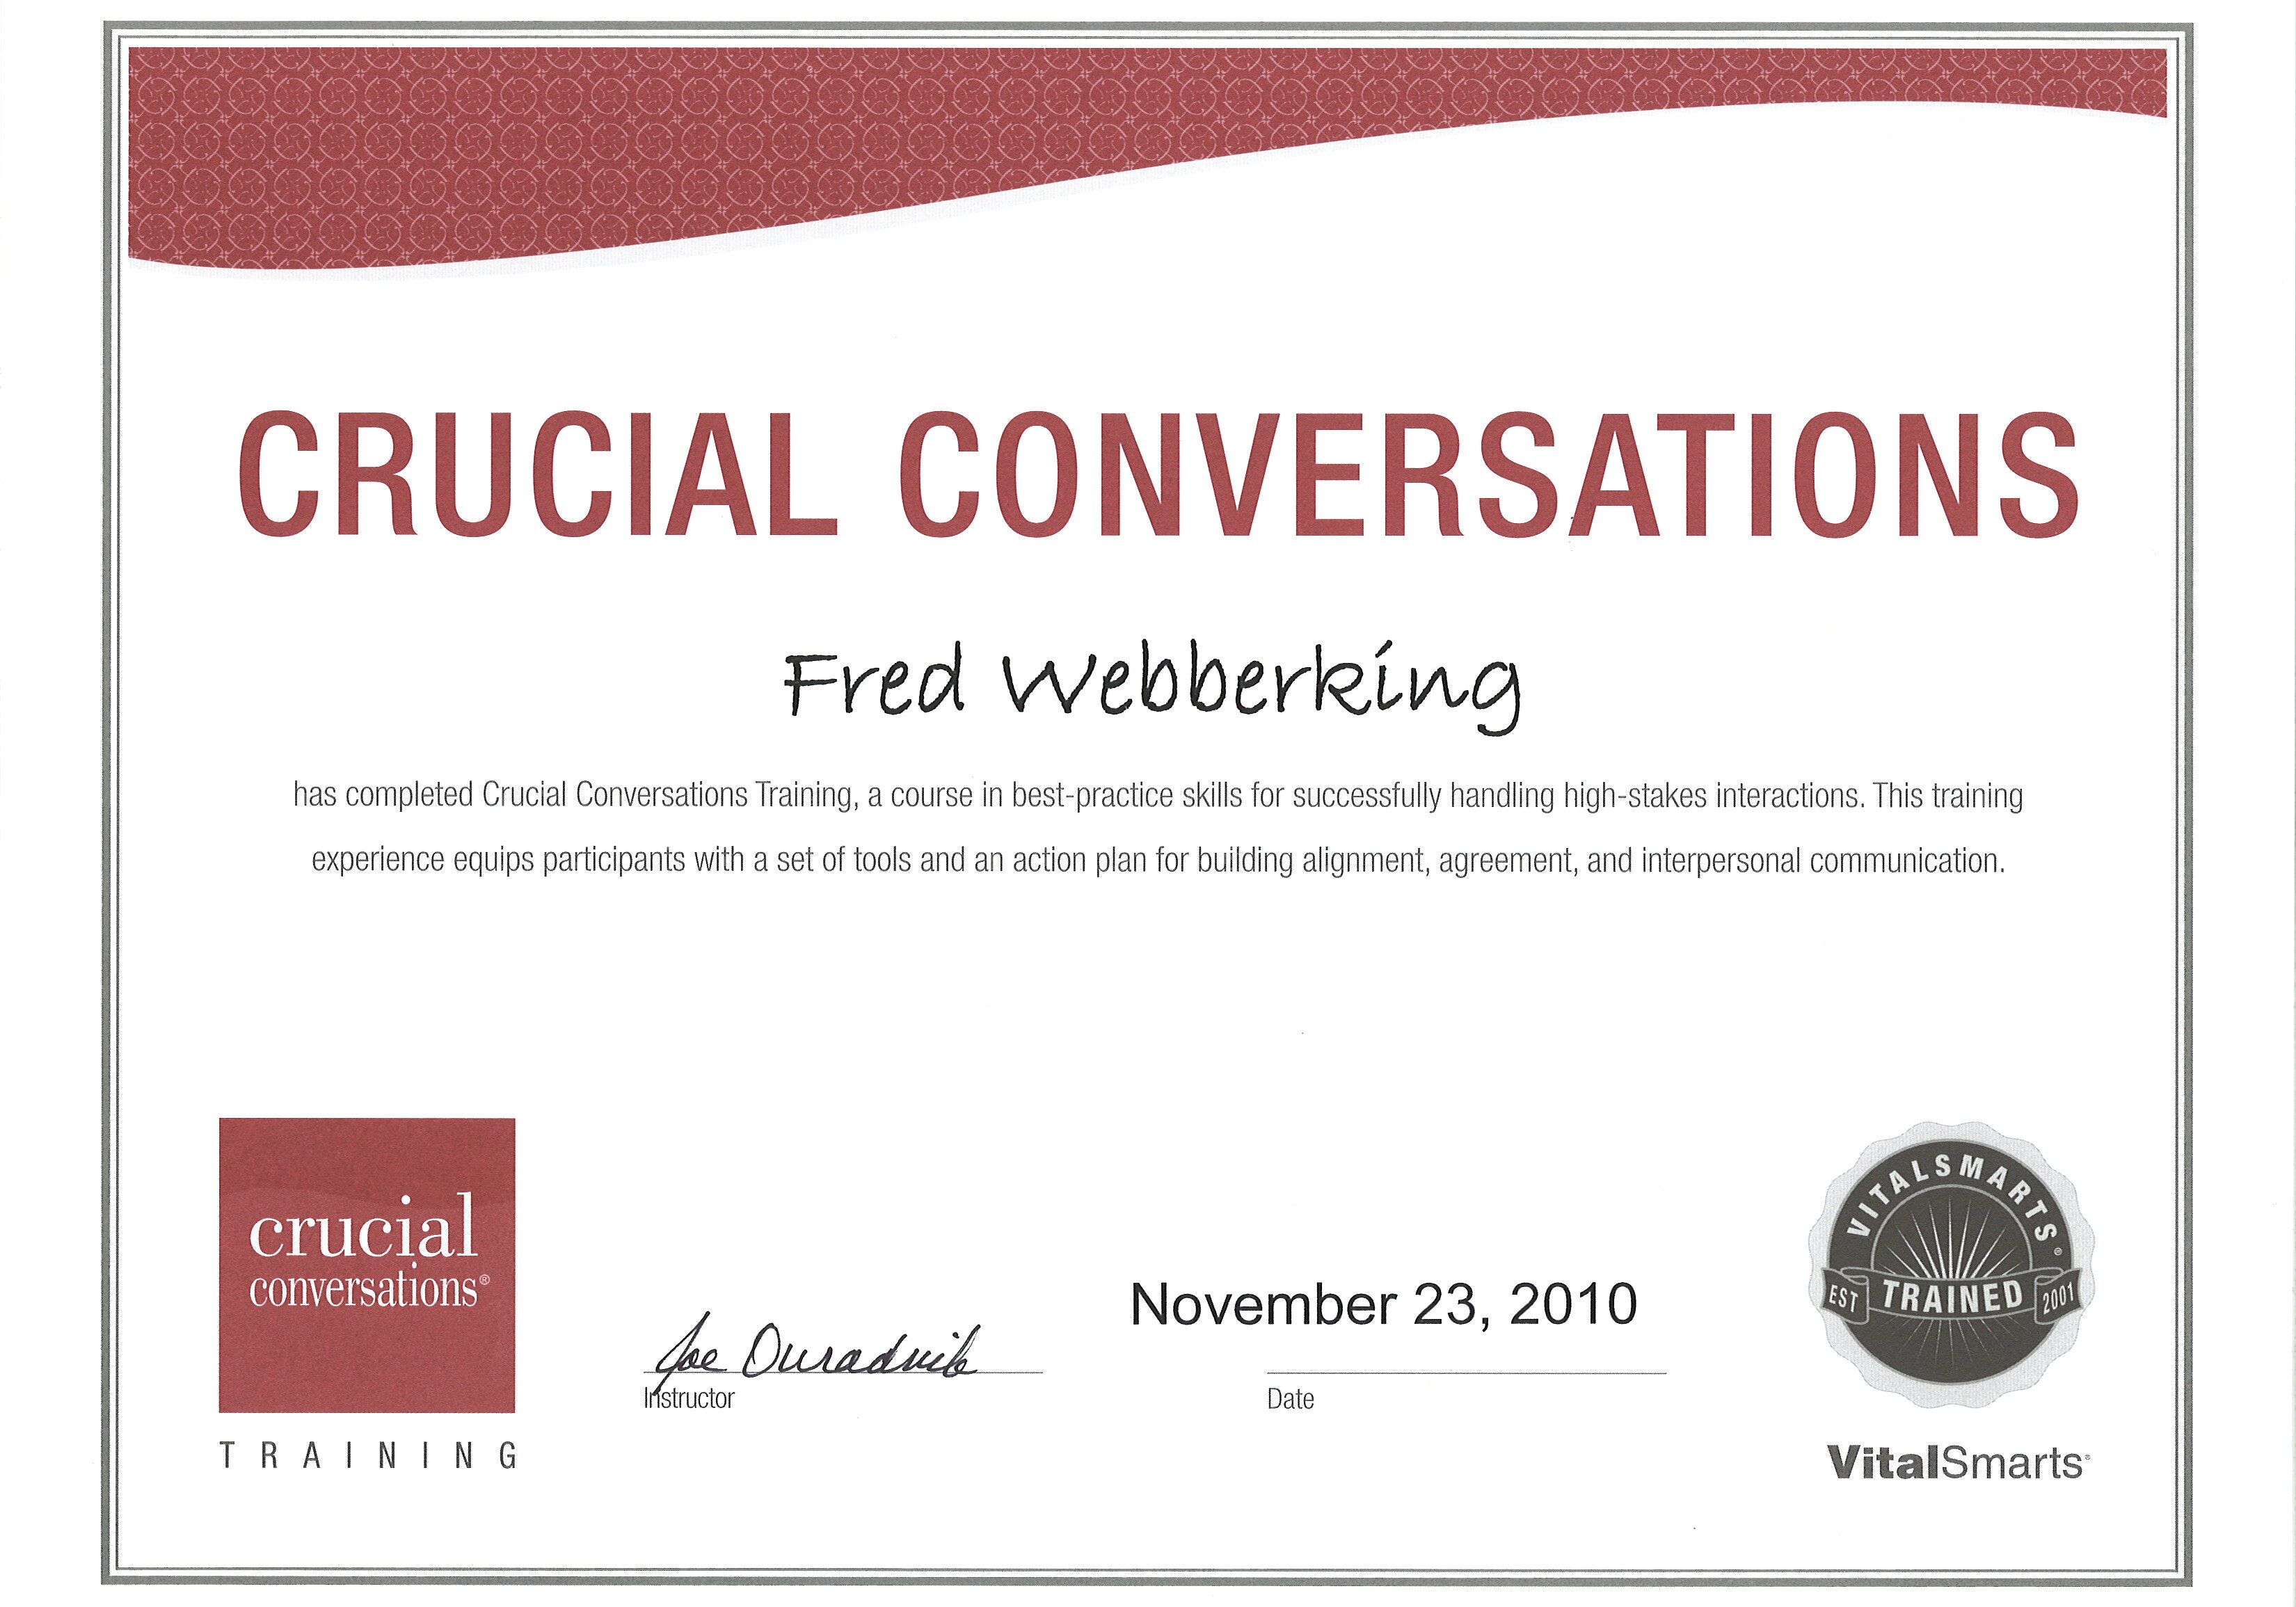 Crucial Conversations Certificate Thumbnail